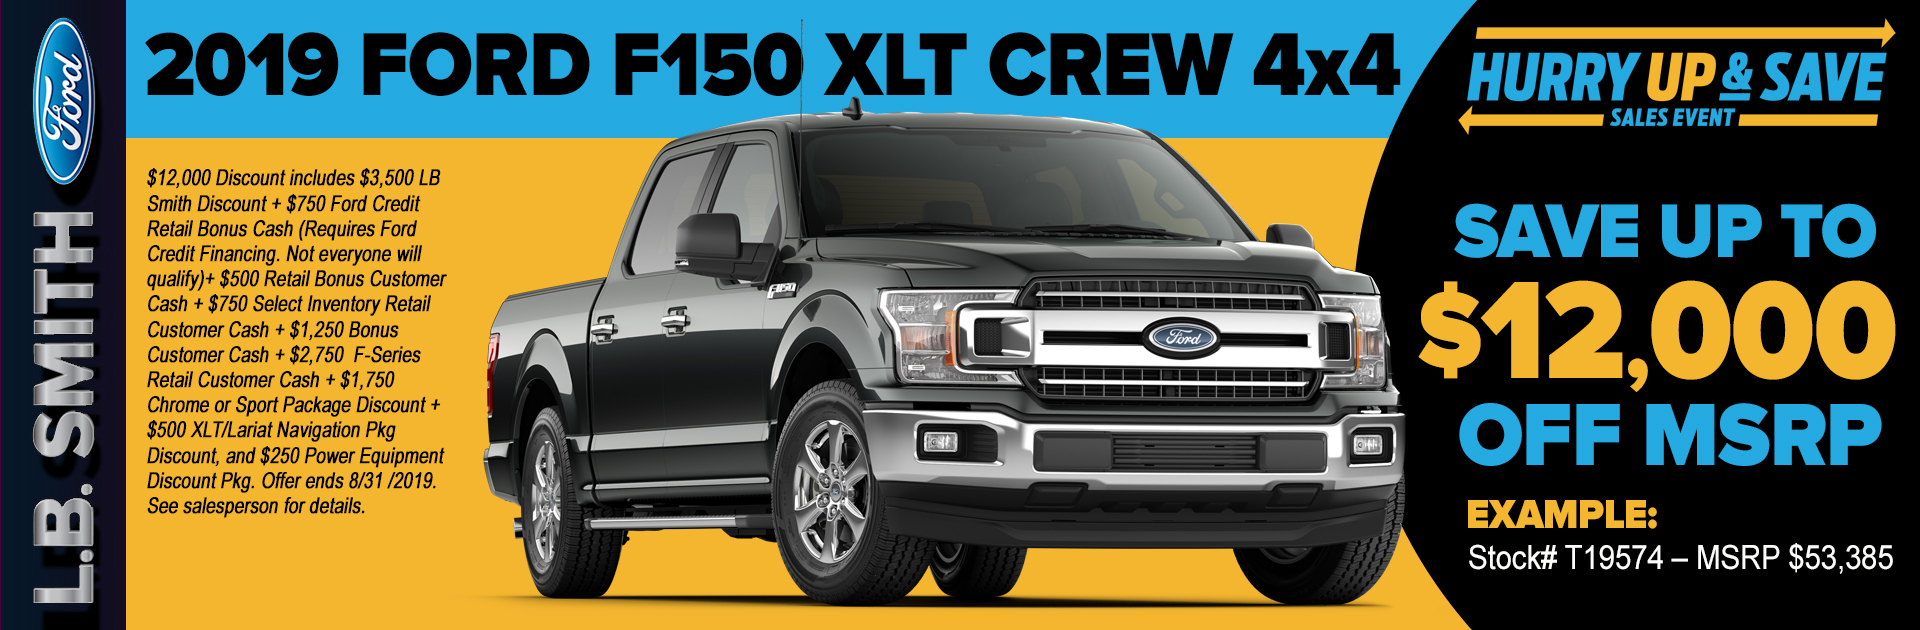 2019 Ford F150 Special